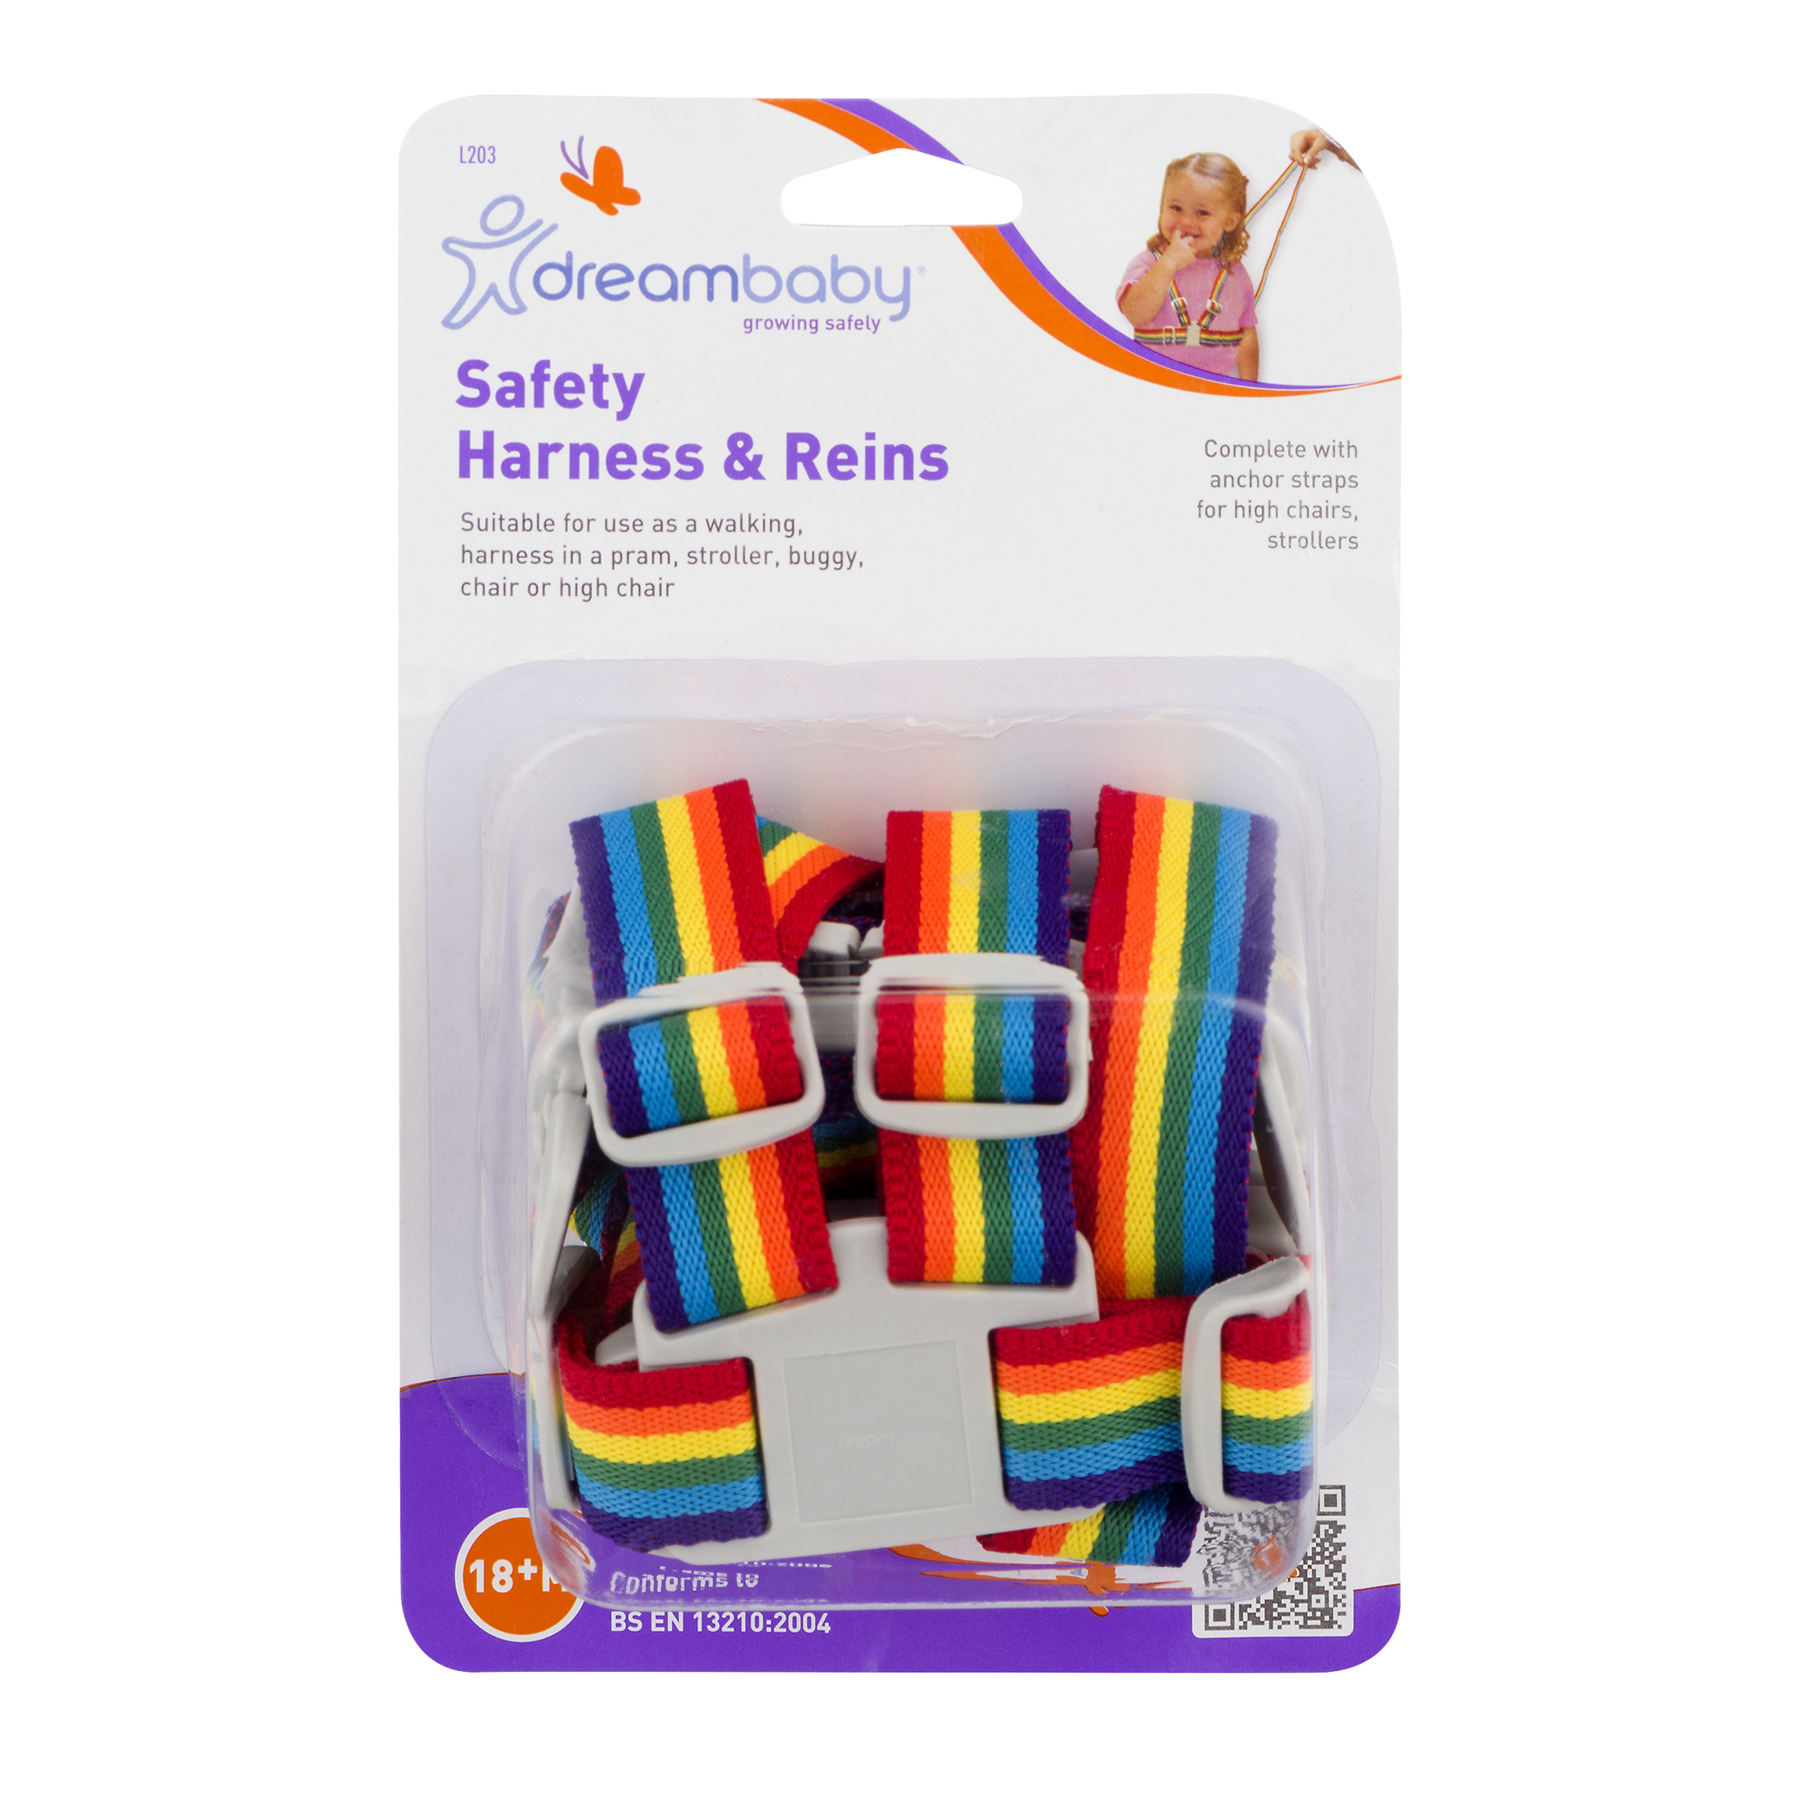 Dreambaby Safety Harness & Reins, 1.0 CT